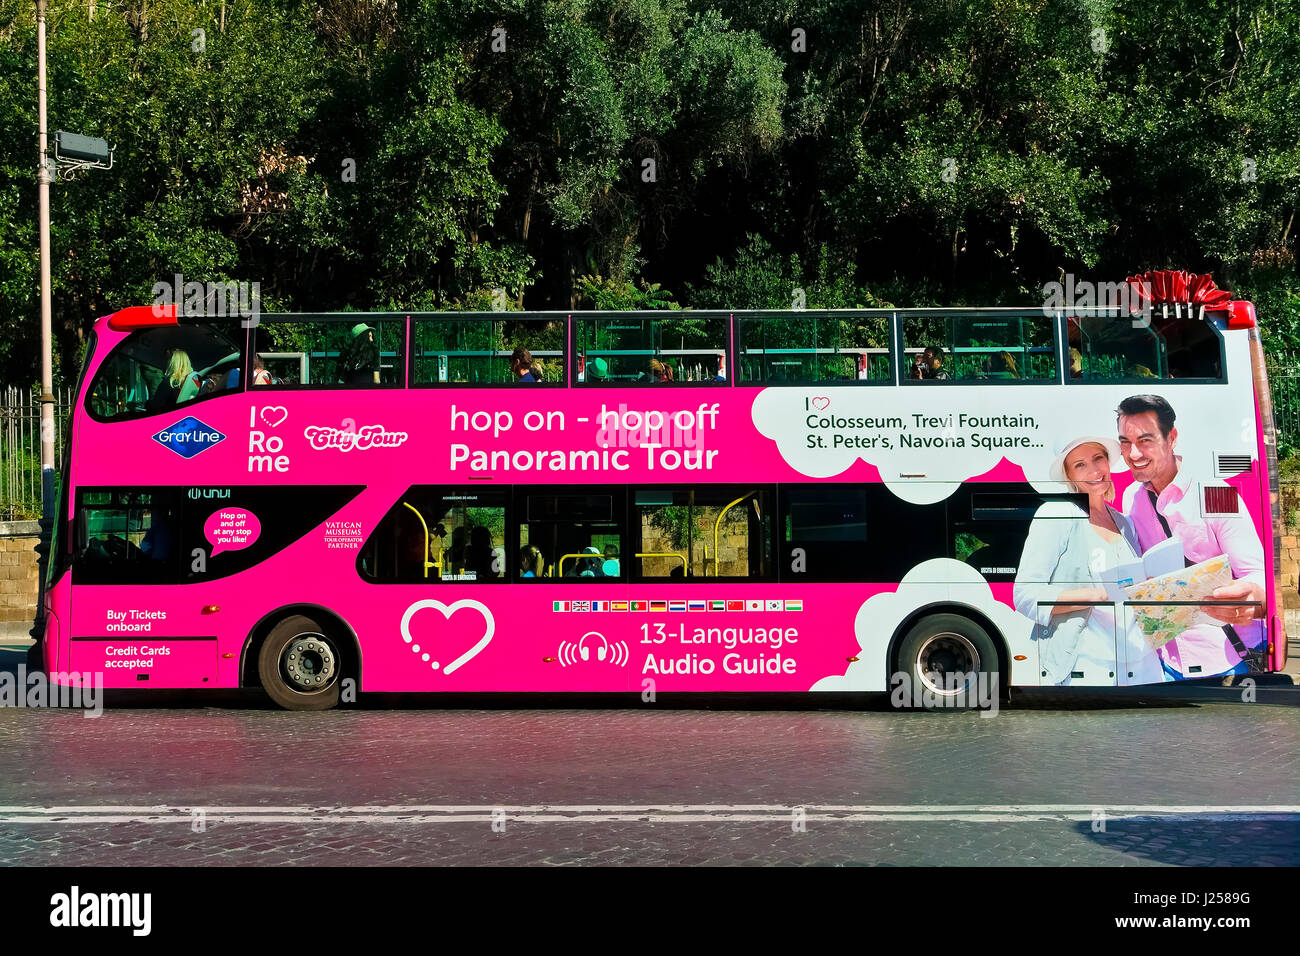 Pink sightseeing double decker open bus, tourism. Hop on hop off. Rome, Italy, Europe - Stock Image